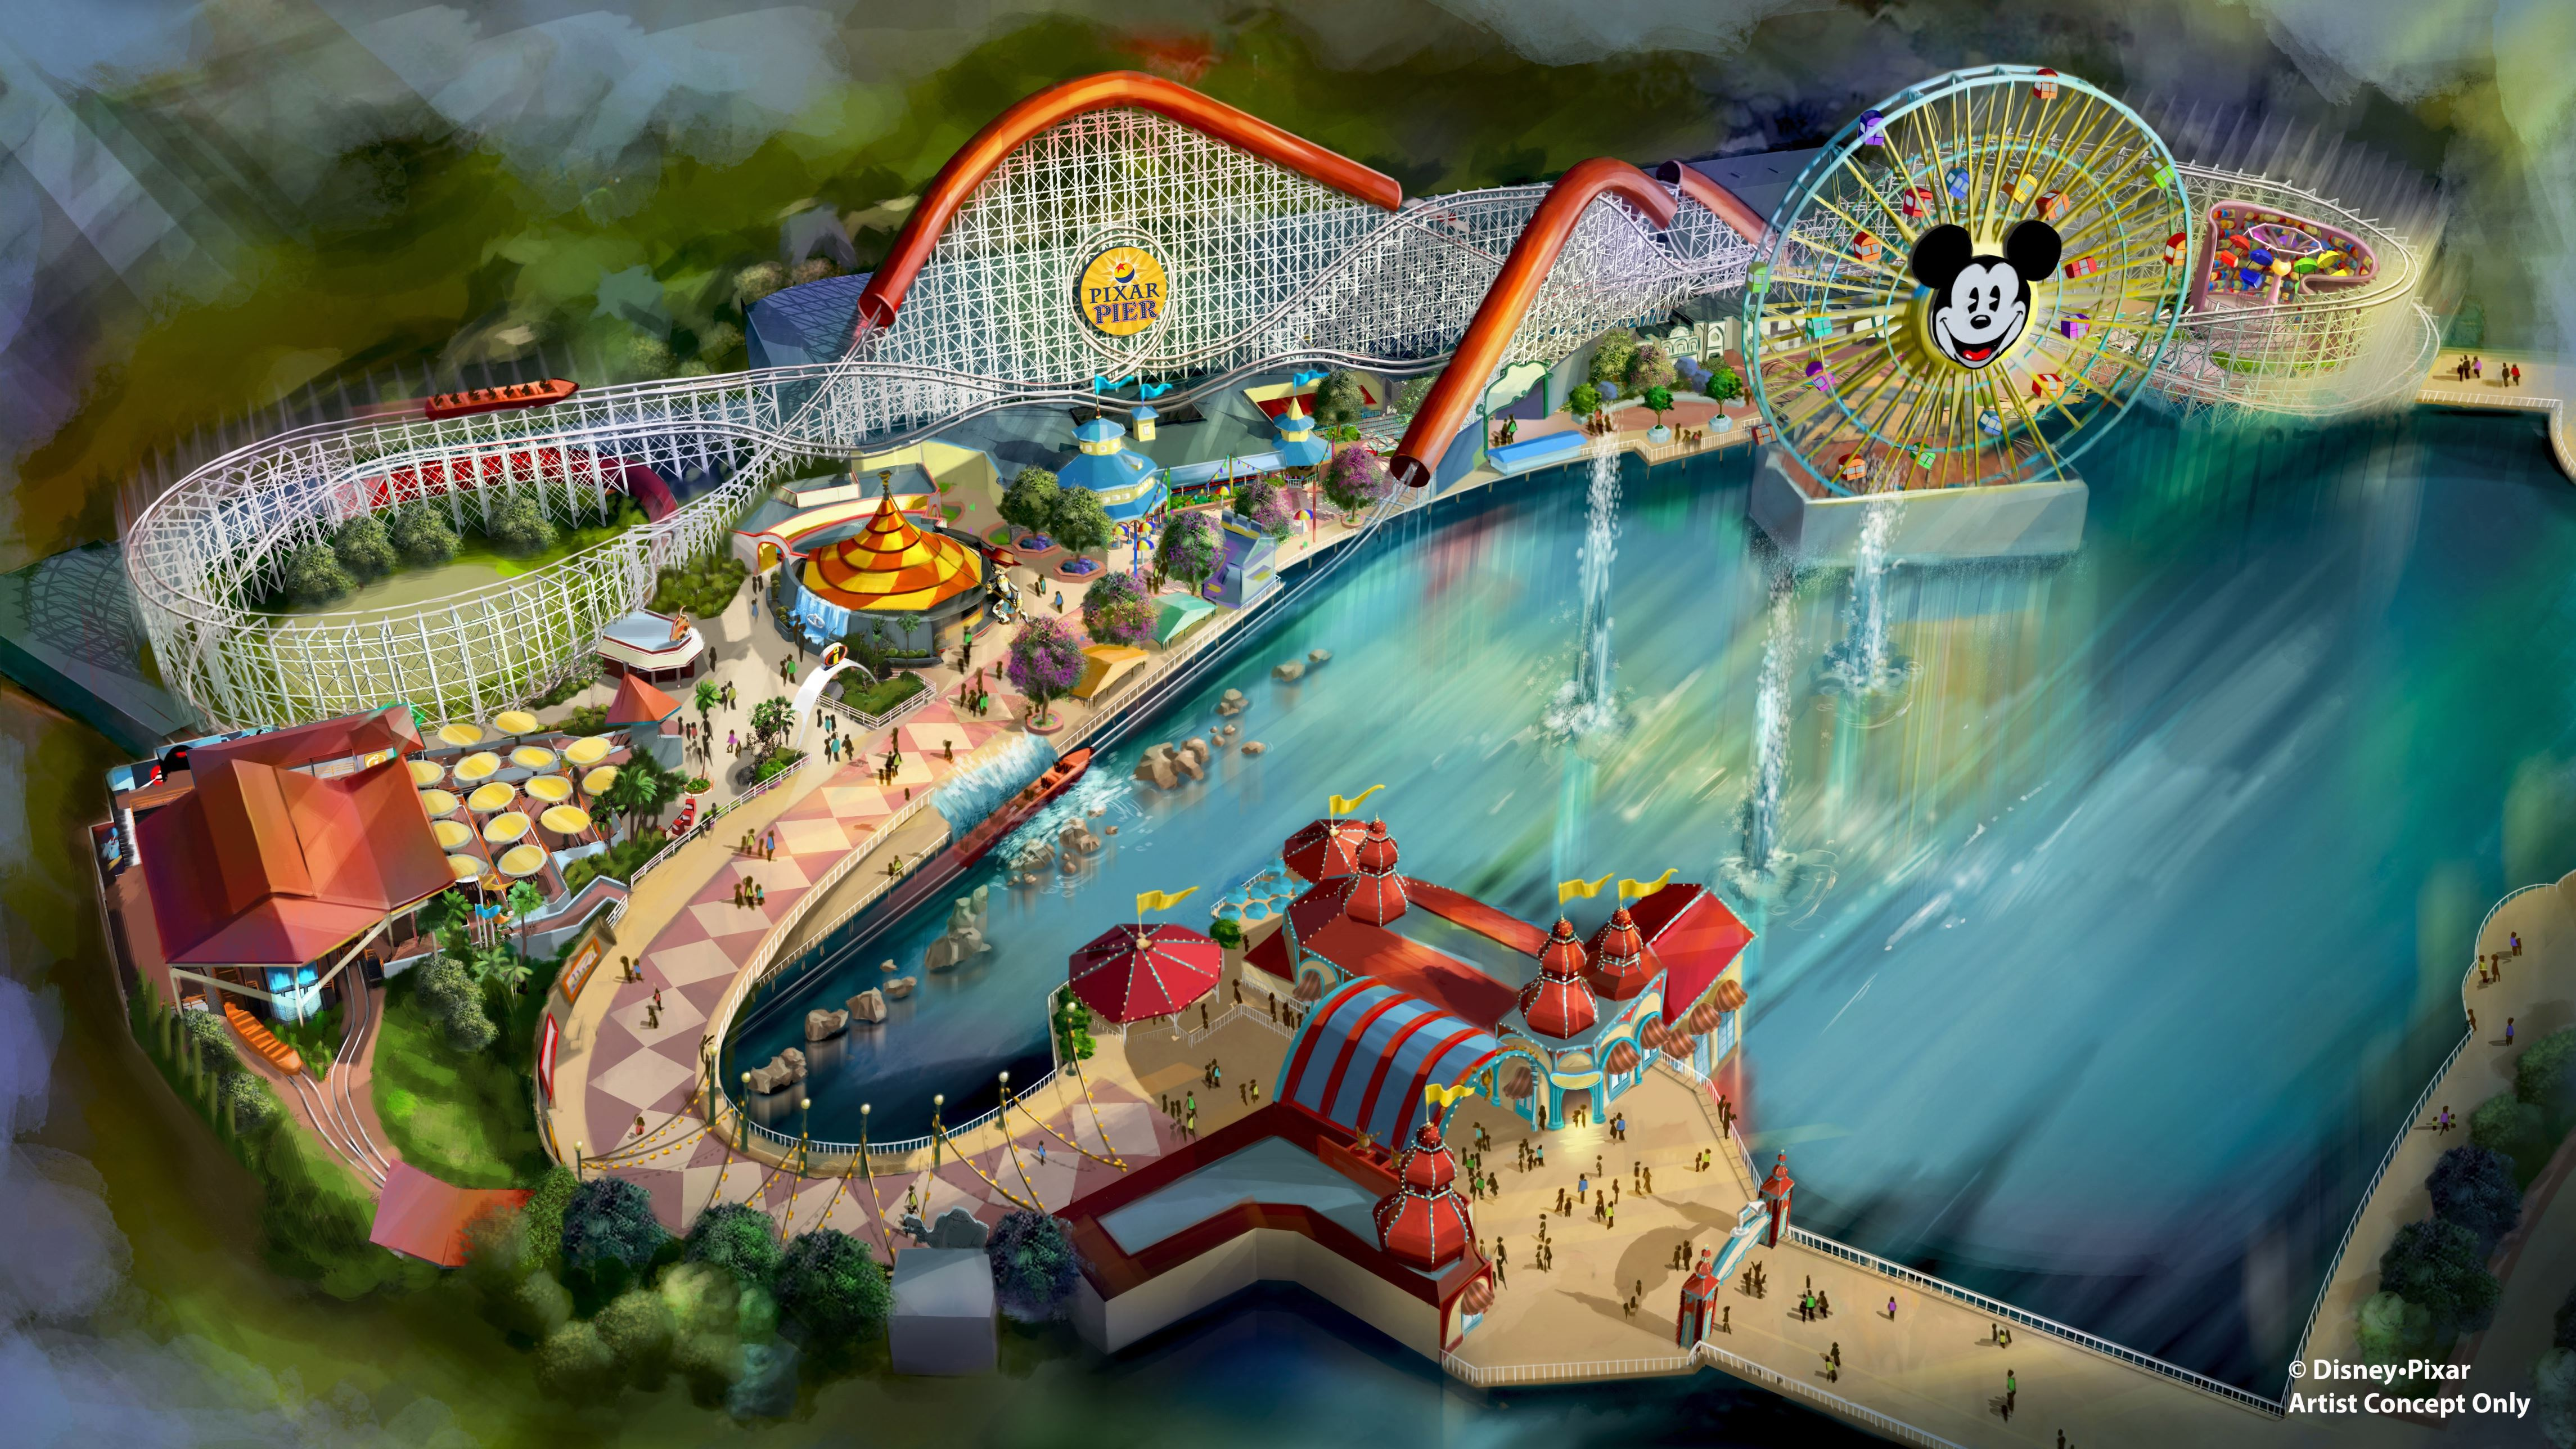 """Slide 12 of 15: PIXAR PIER (ANAHEIM, Calif.) –Summer 2018 will bring a transformed land when Pixar Pier opens for guests to experience at Disney California Adventure park, featuring the new Incredicoaster inspired by Disney•Pixar's """"The Incredibles."""" This artist concept illustrates the four new neighborhoods that will represent beloved Pixar stories and the newly themed attractions that will be found throughout the permanent land of Pixar Pier. (Disney•Pixar)"""